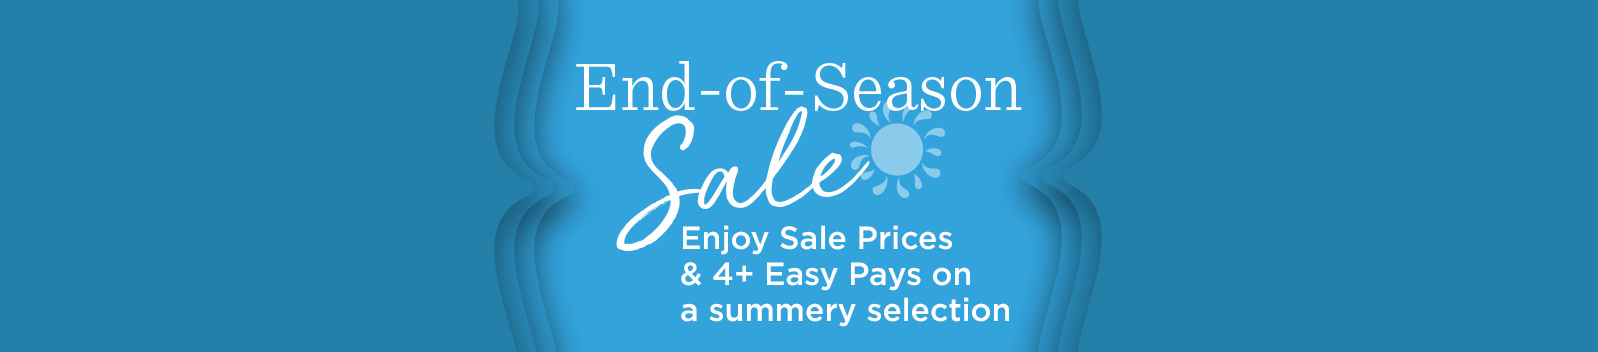 End-of-Season Sale — Enjoy Sale Prices & 4+ Easy Pays on a summery selection